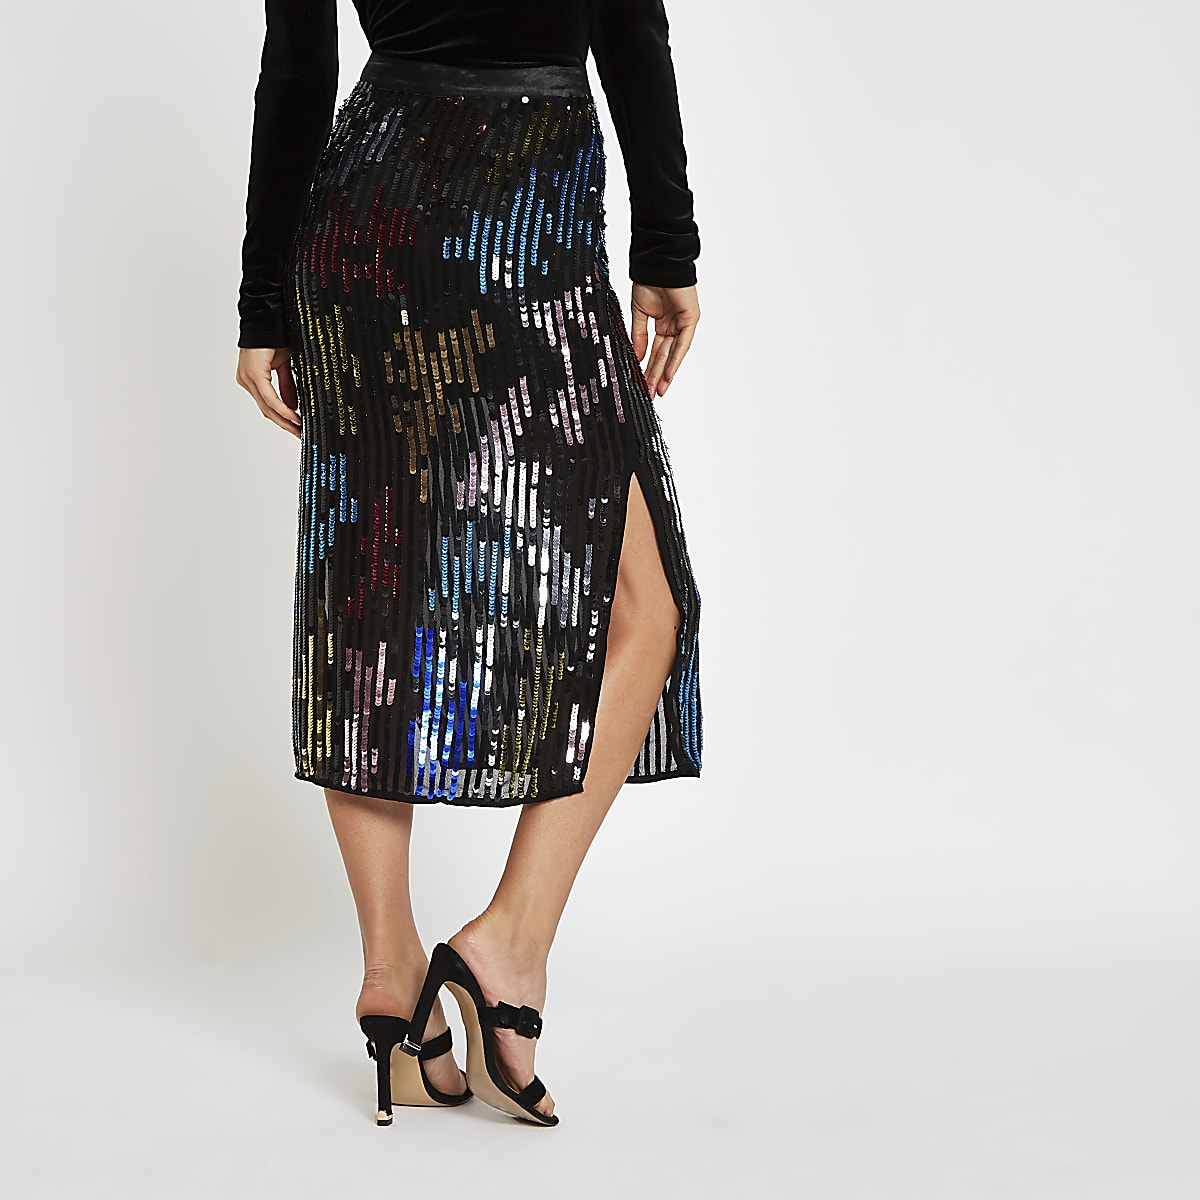 bd67718e13 Black multicoloured sequin pencil skirt - Midi Skirts - Skirts - women